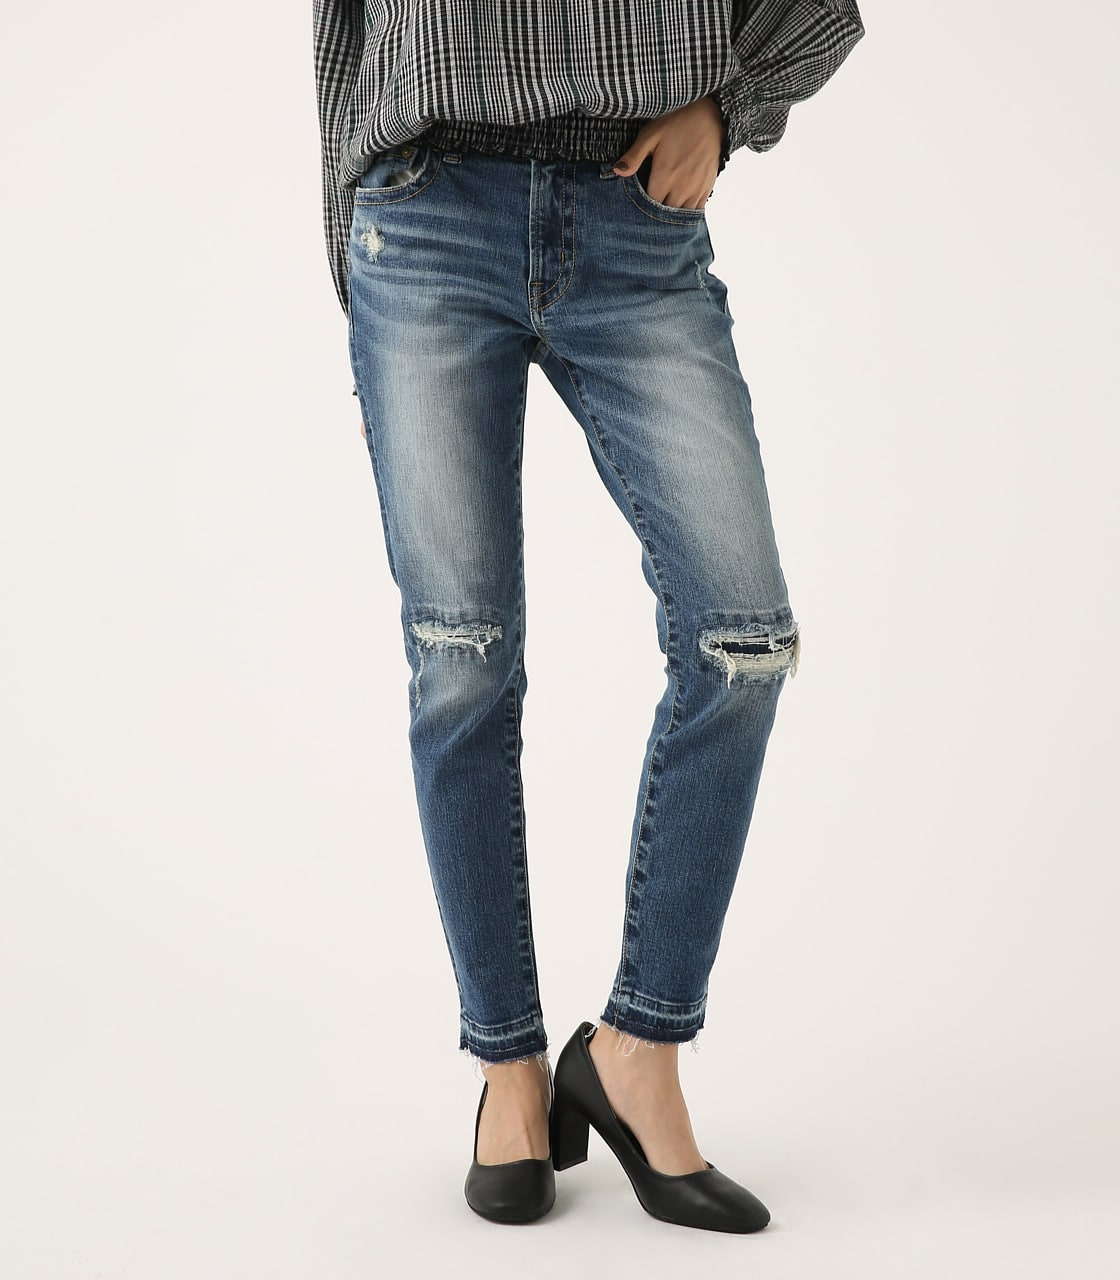 【AZUL BY MOUSSY】REPAIR DENIM SKINNY 詳細画像 BLU 1